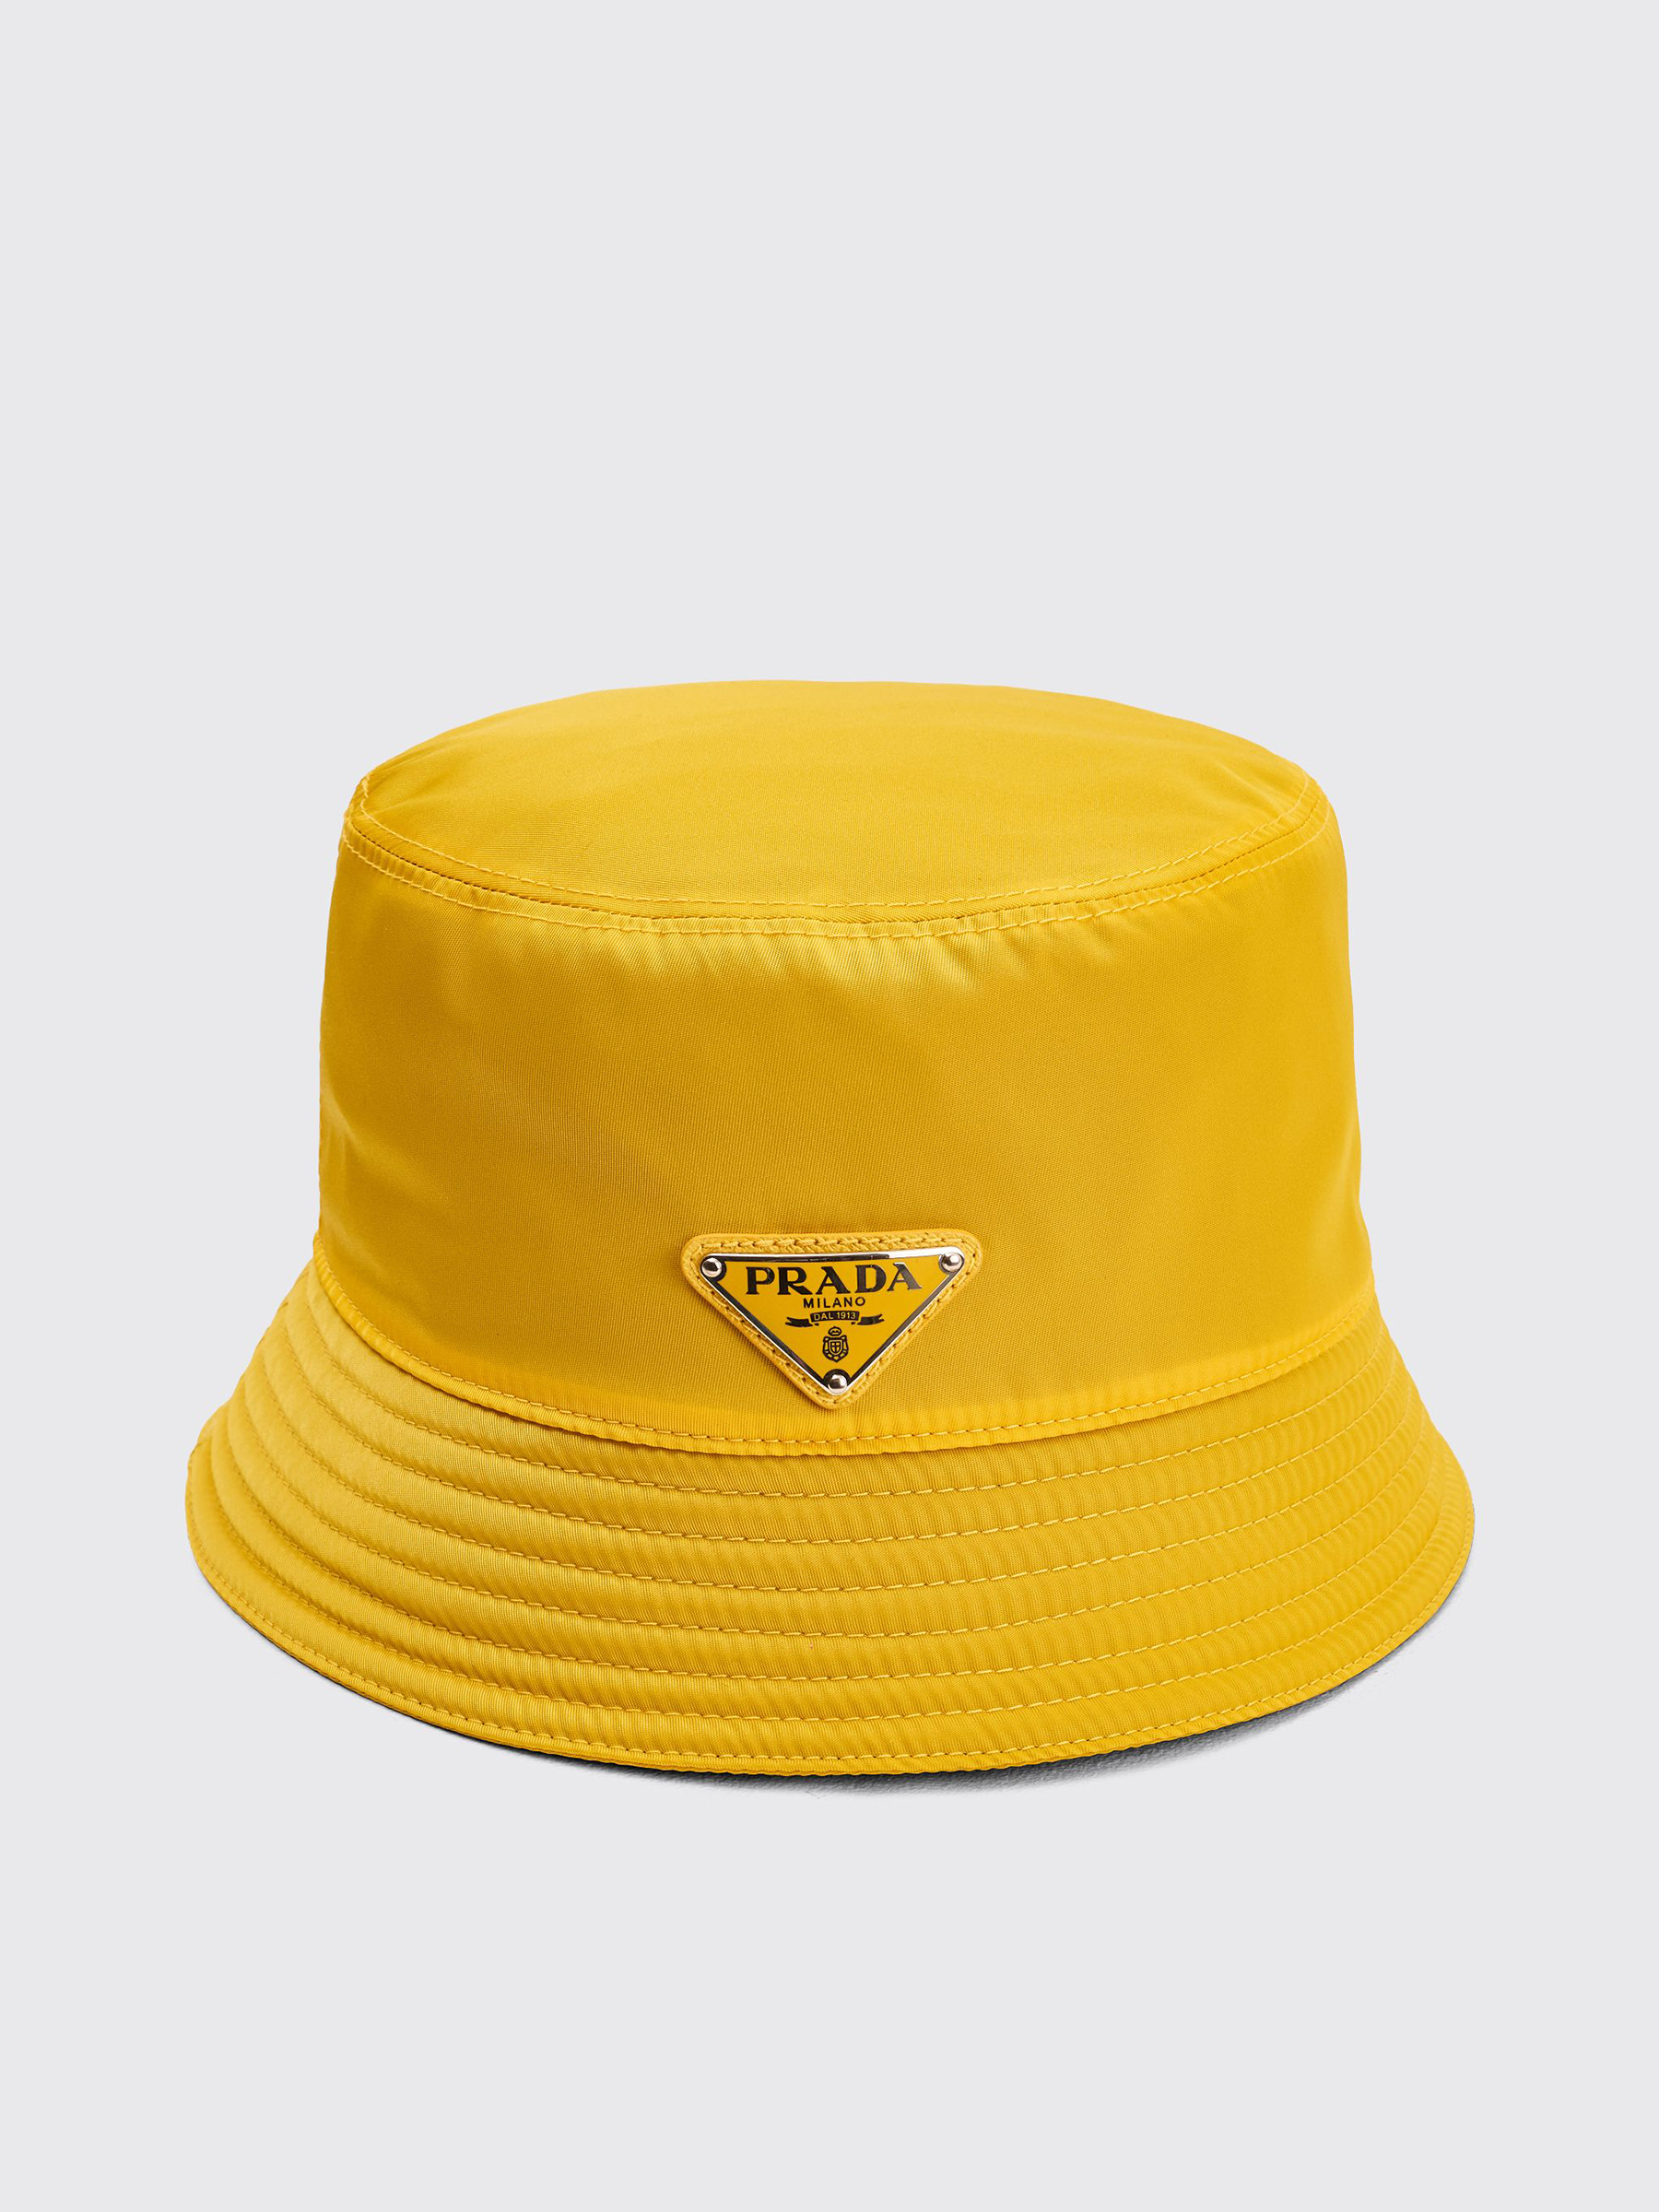 6aa4ffa5b Prada Nylon Bucket Hat Triangle Logo Yellow